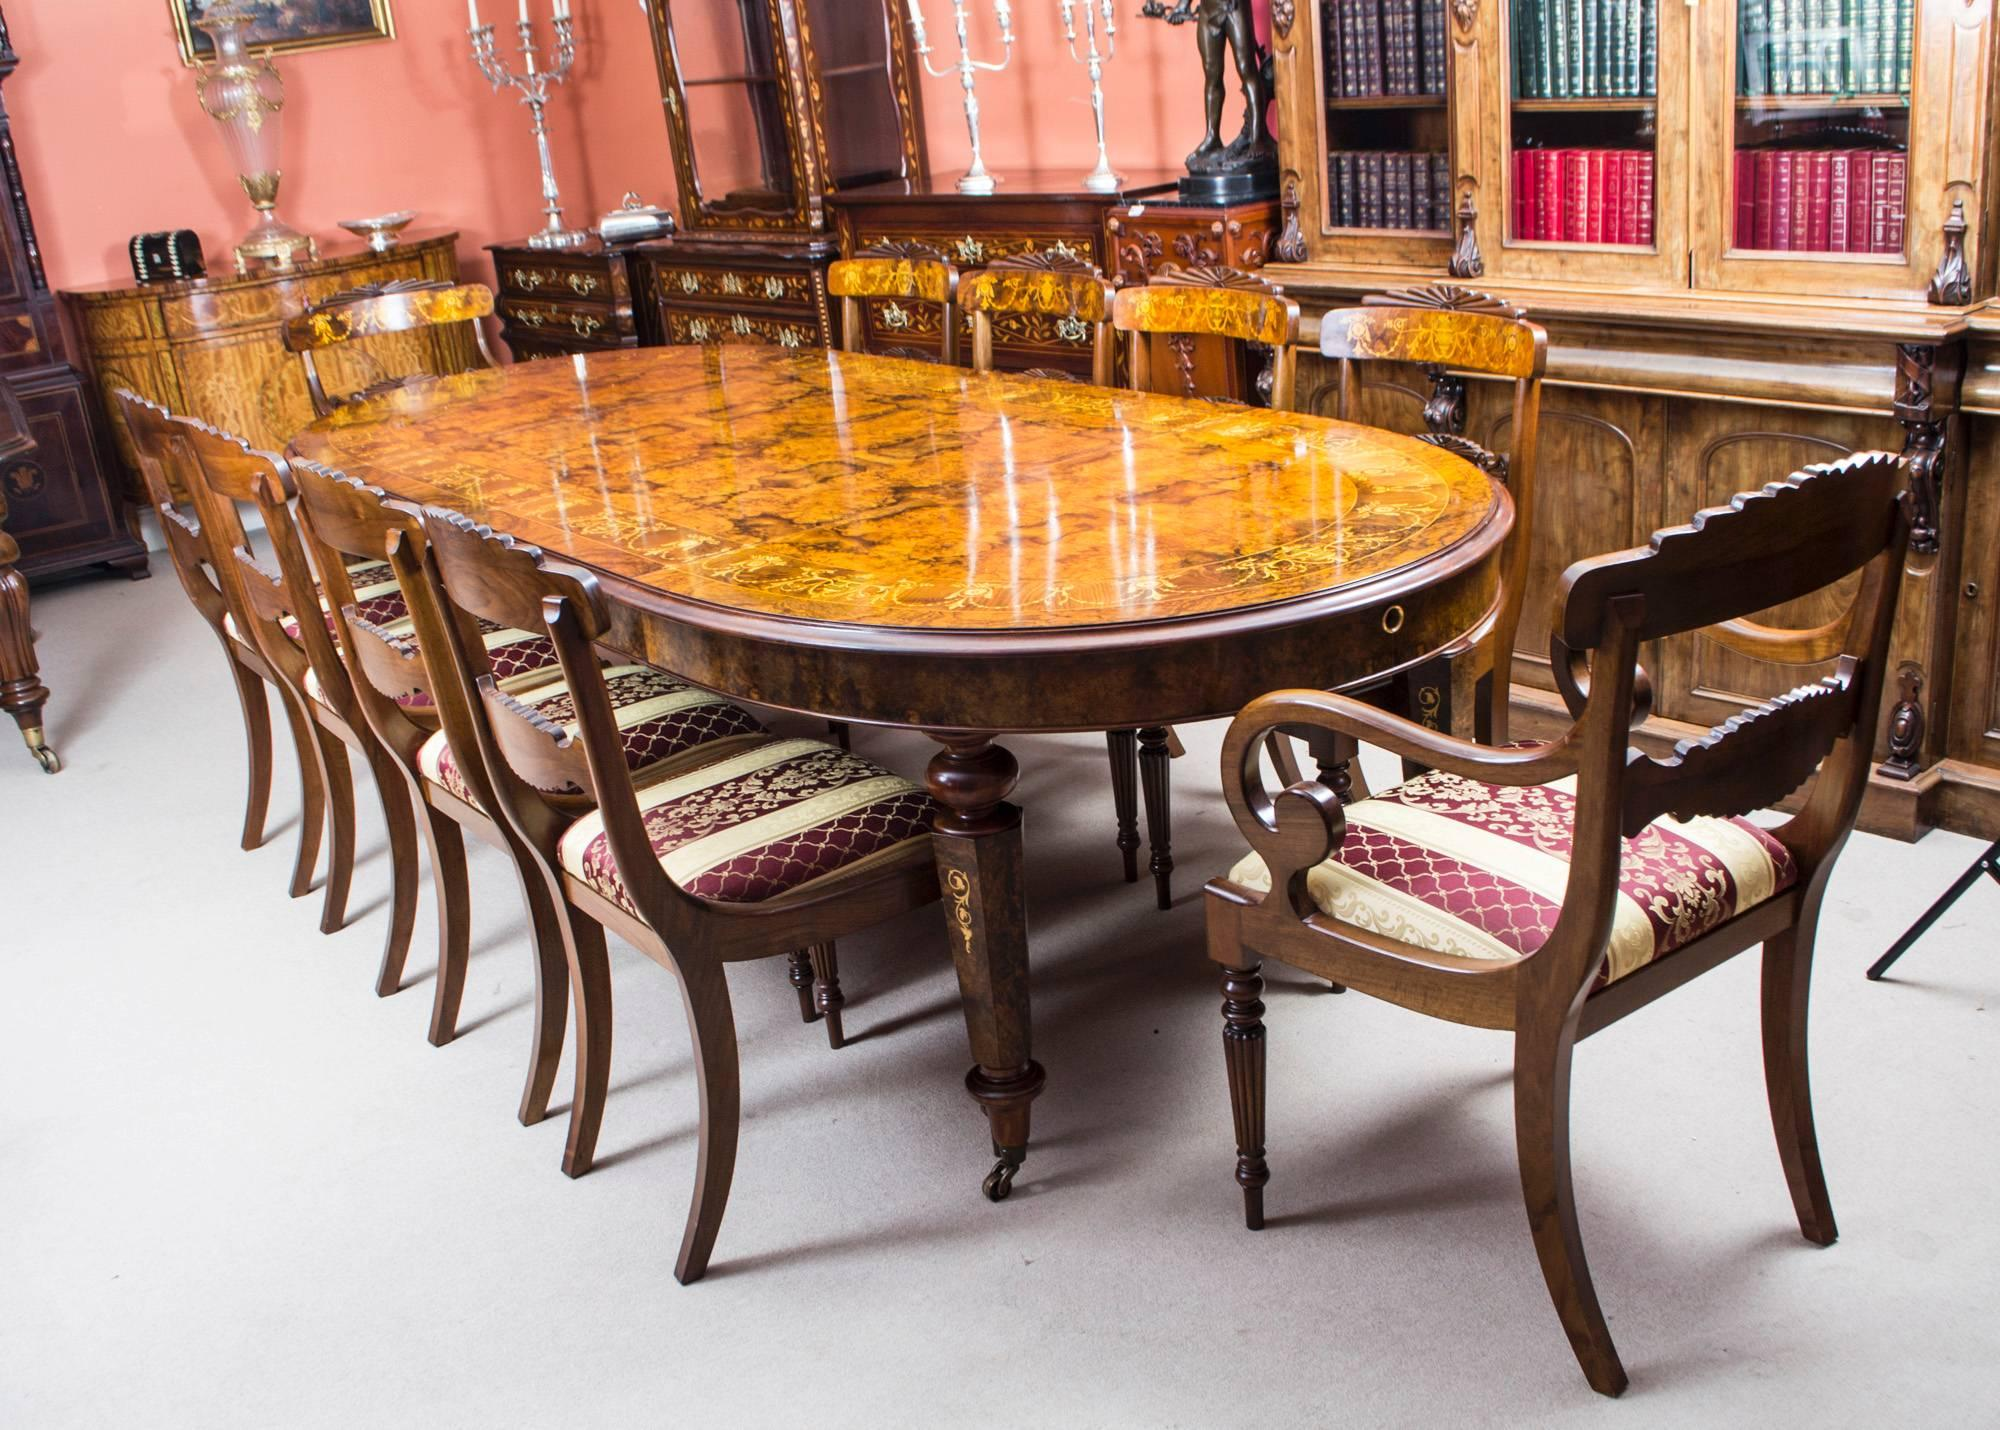 10 chair dining table set best and chairs for toddlers stunning bespoke handmade burr walnut marquetry sale at 1stdibs